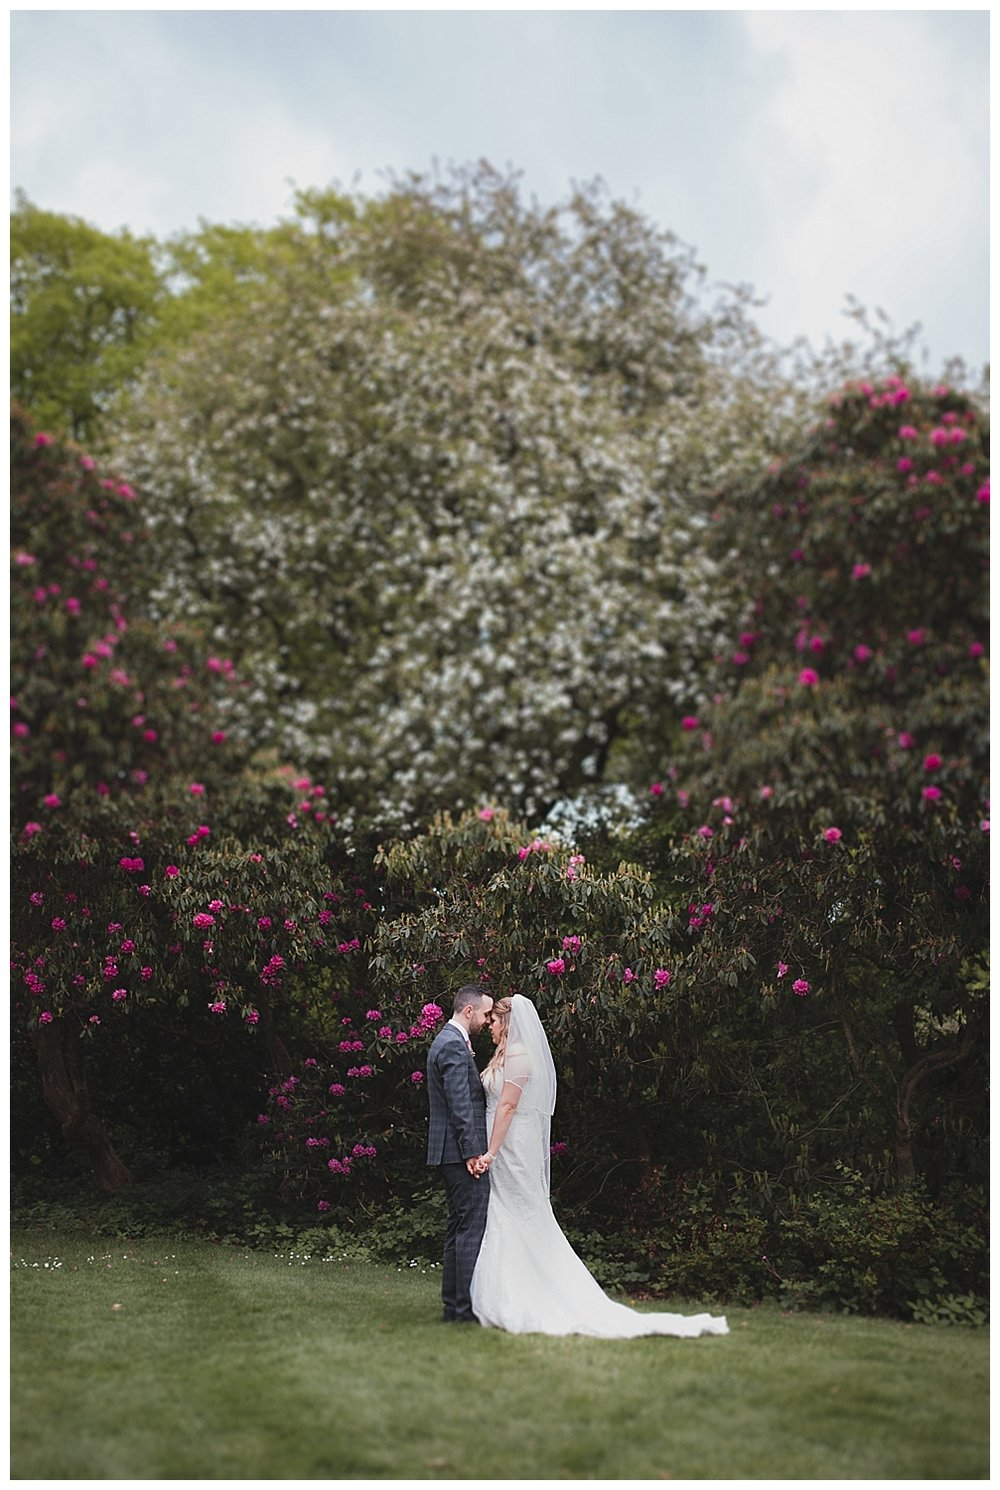 Bride and groom in front of the spectacular Rhododendrons at Keele Hall.